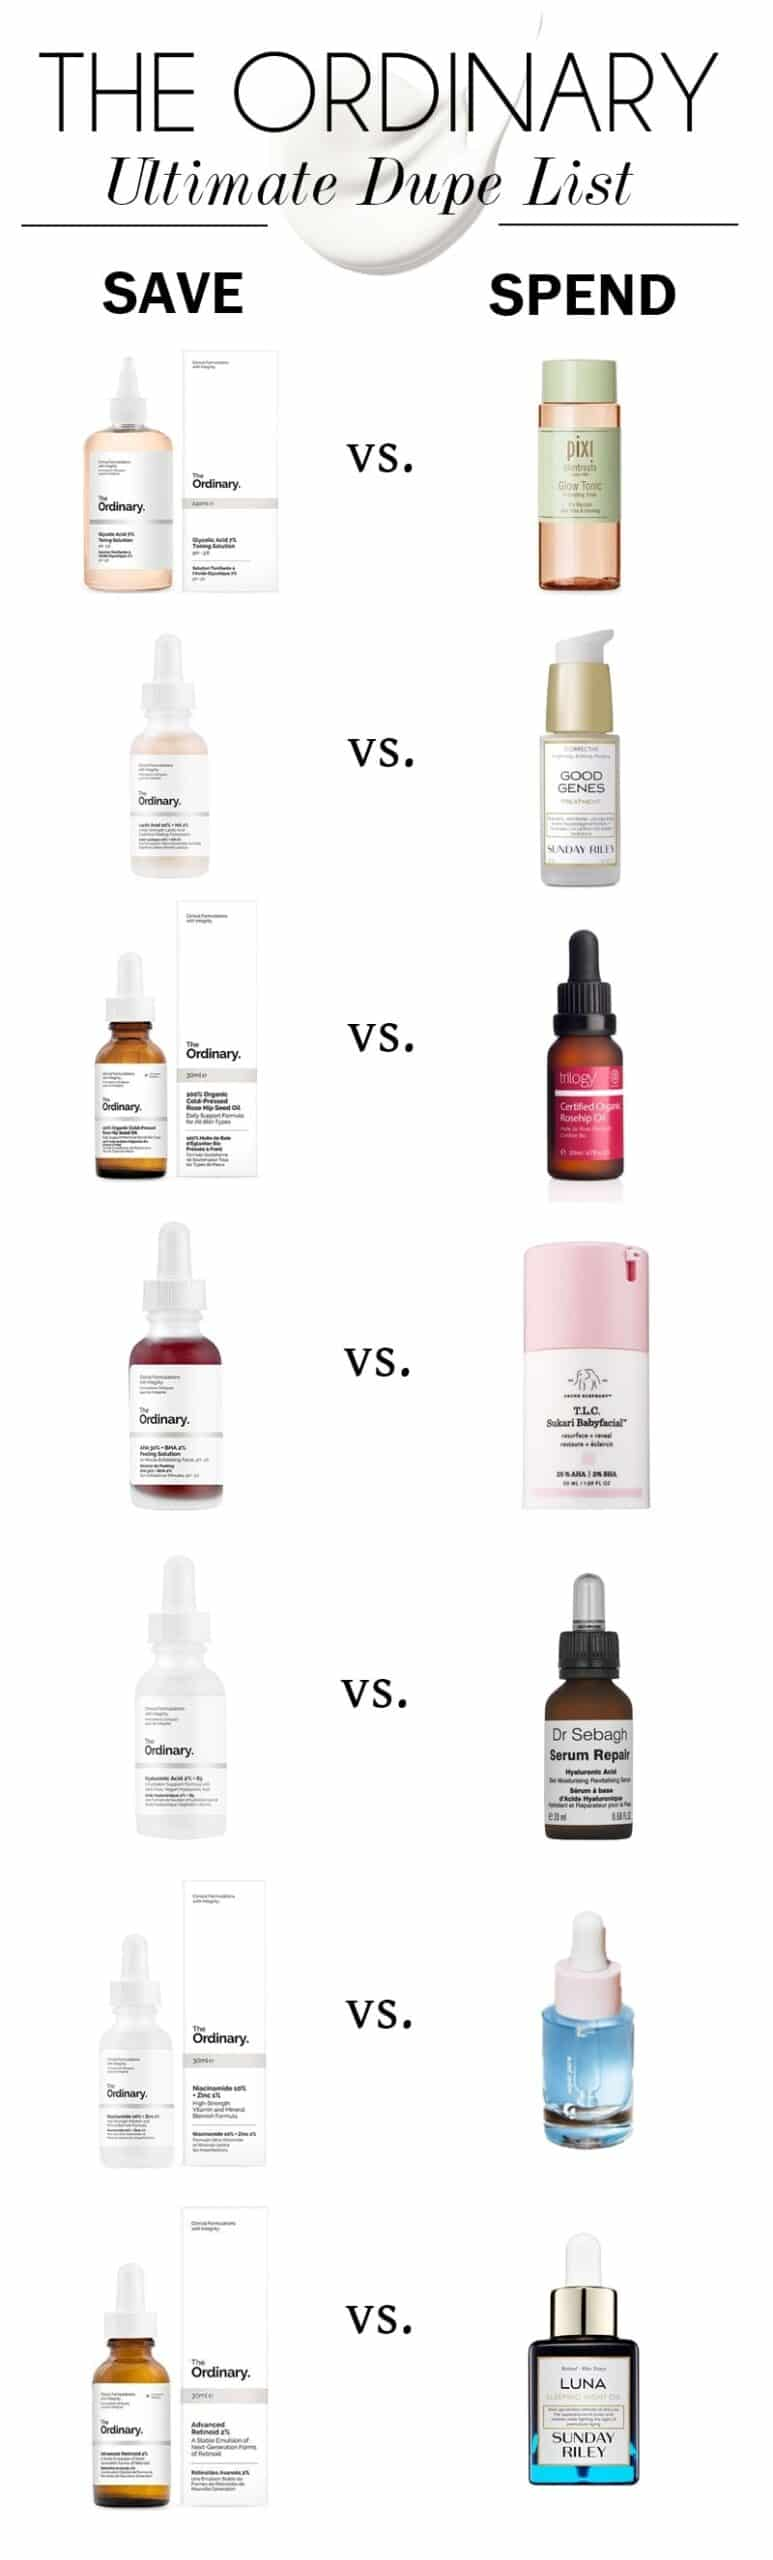 The-Ordinary-Ultimate-Dupe-List